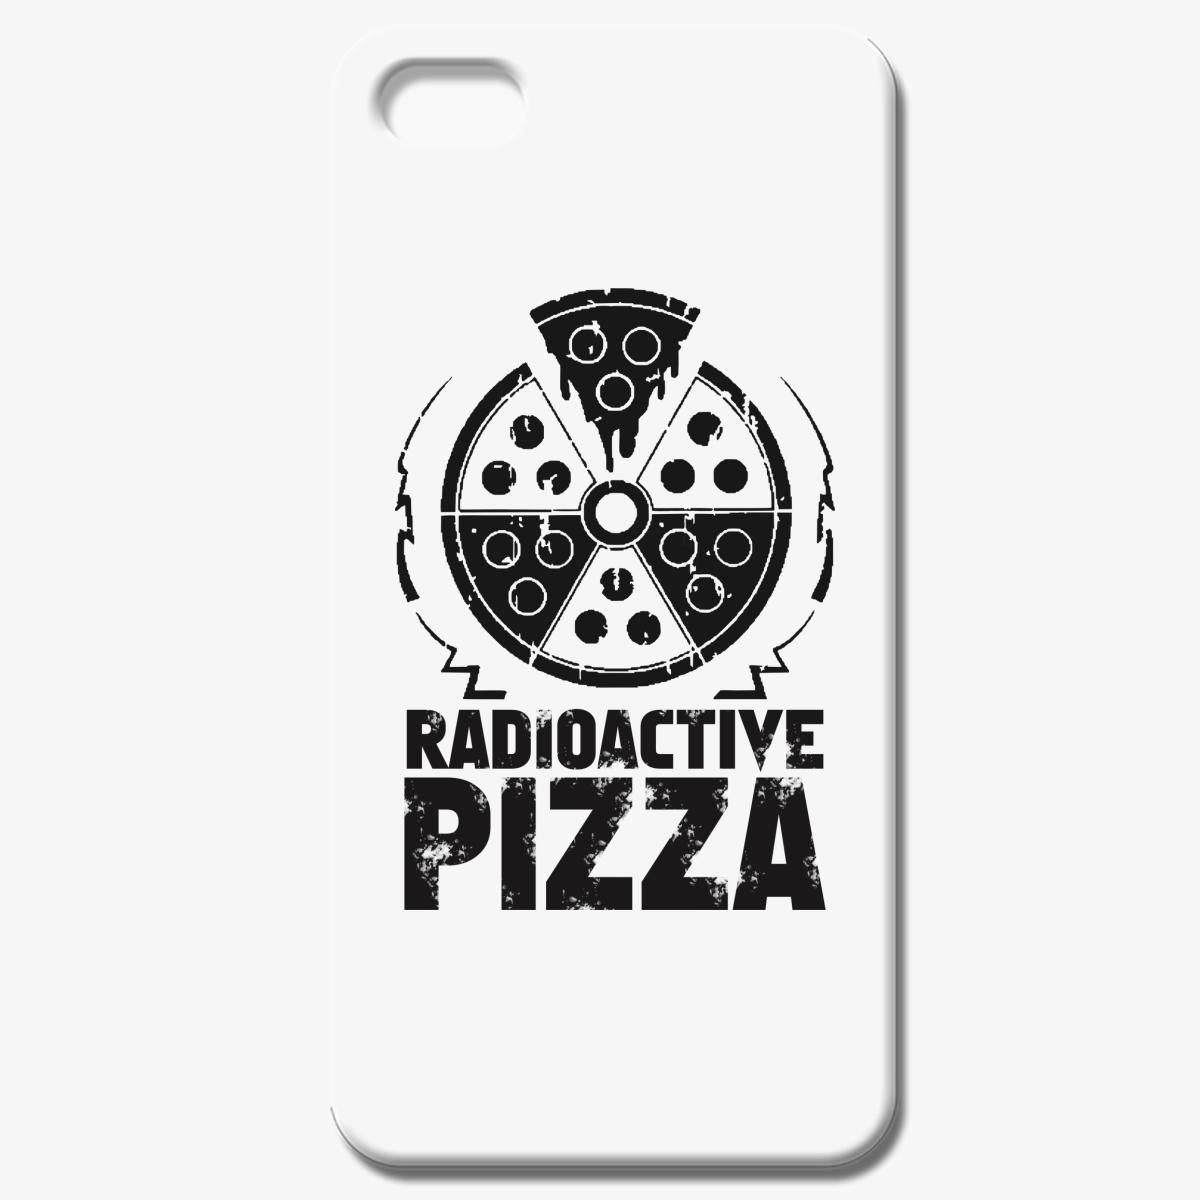 Radioactive Pizza T Shirt Black Iphone 7 Case